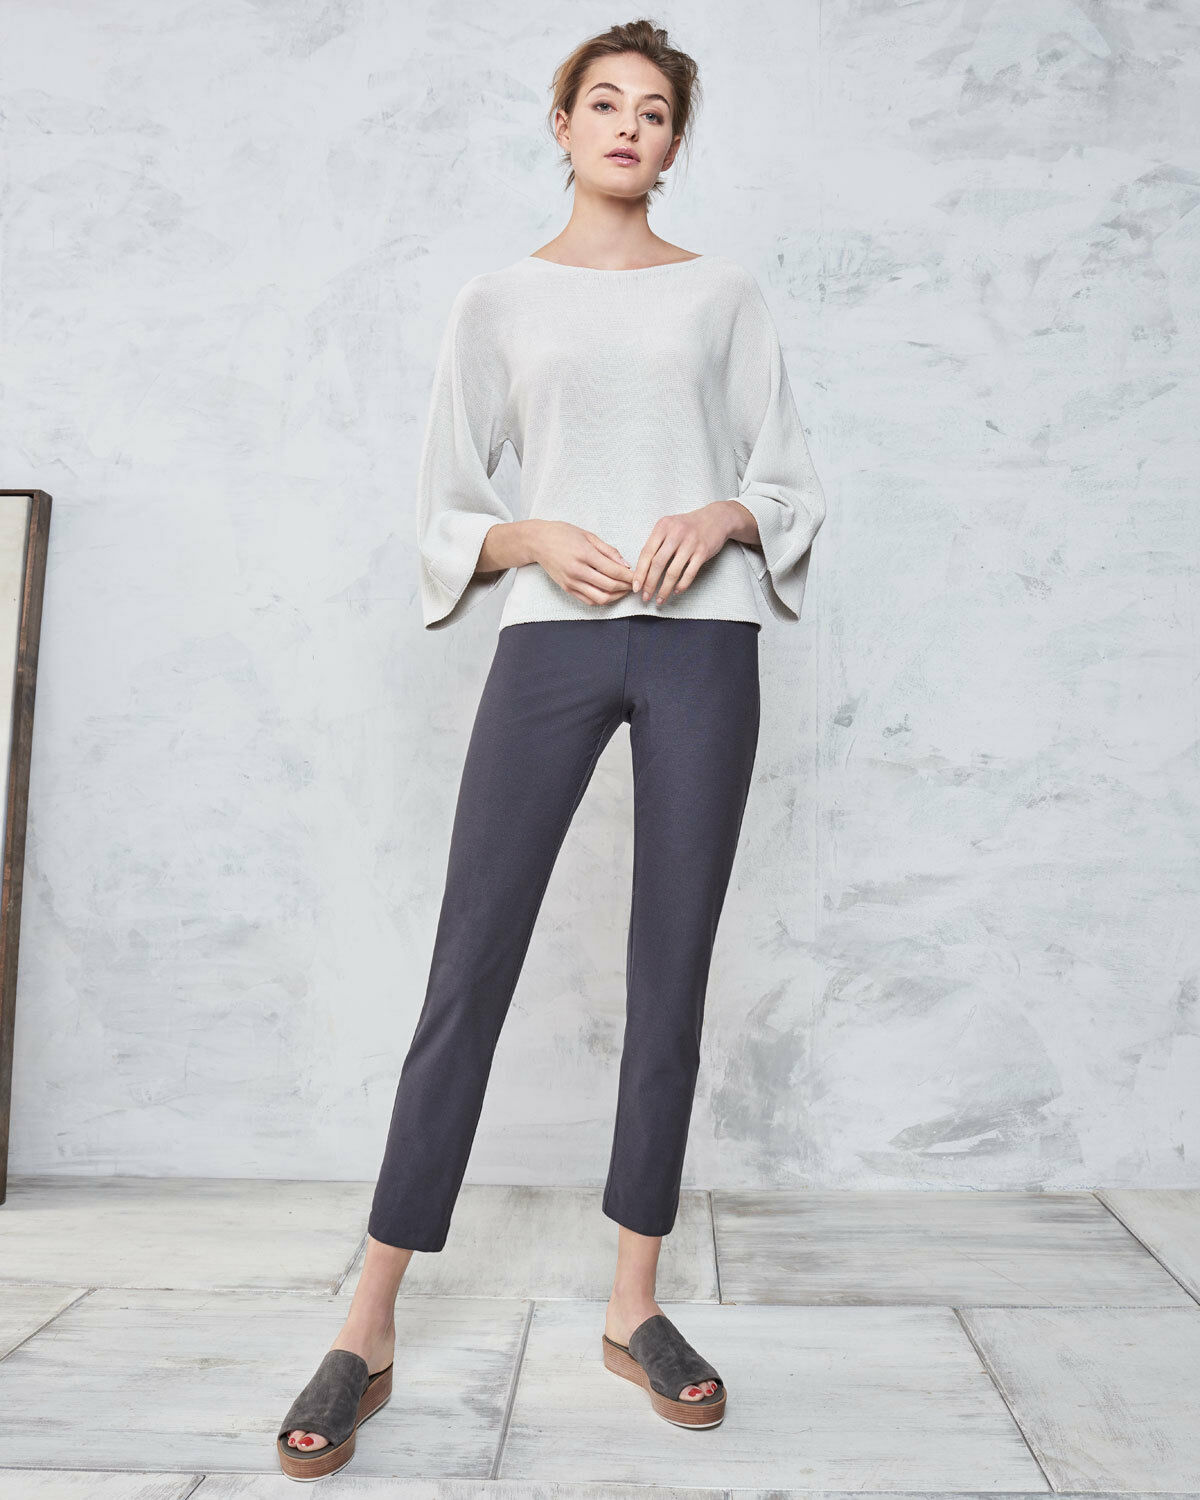 NWT EILEEN FISHER Stretch Graphite Crepe Slim Yoke Ankle Pants 168 XS S M